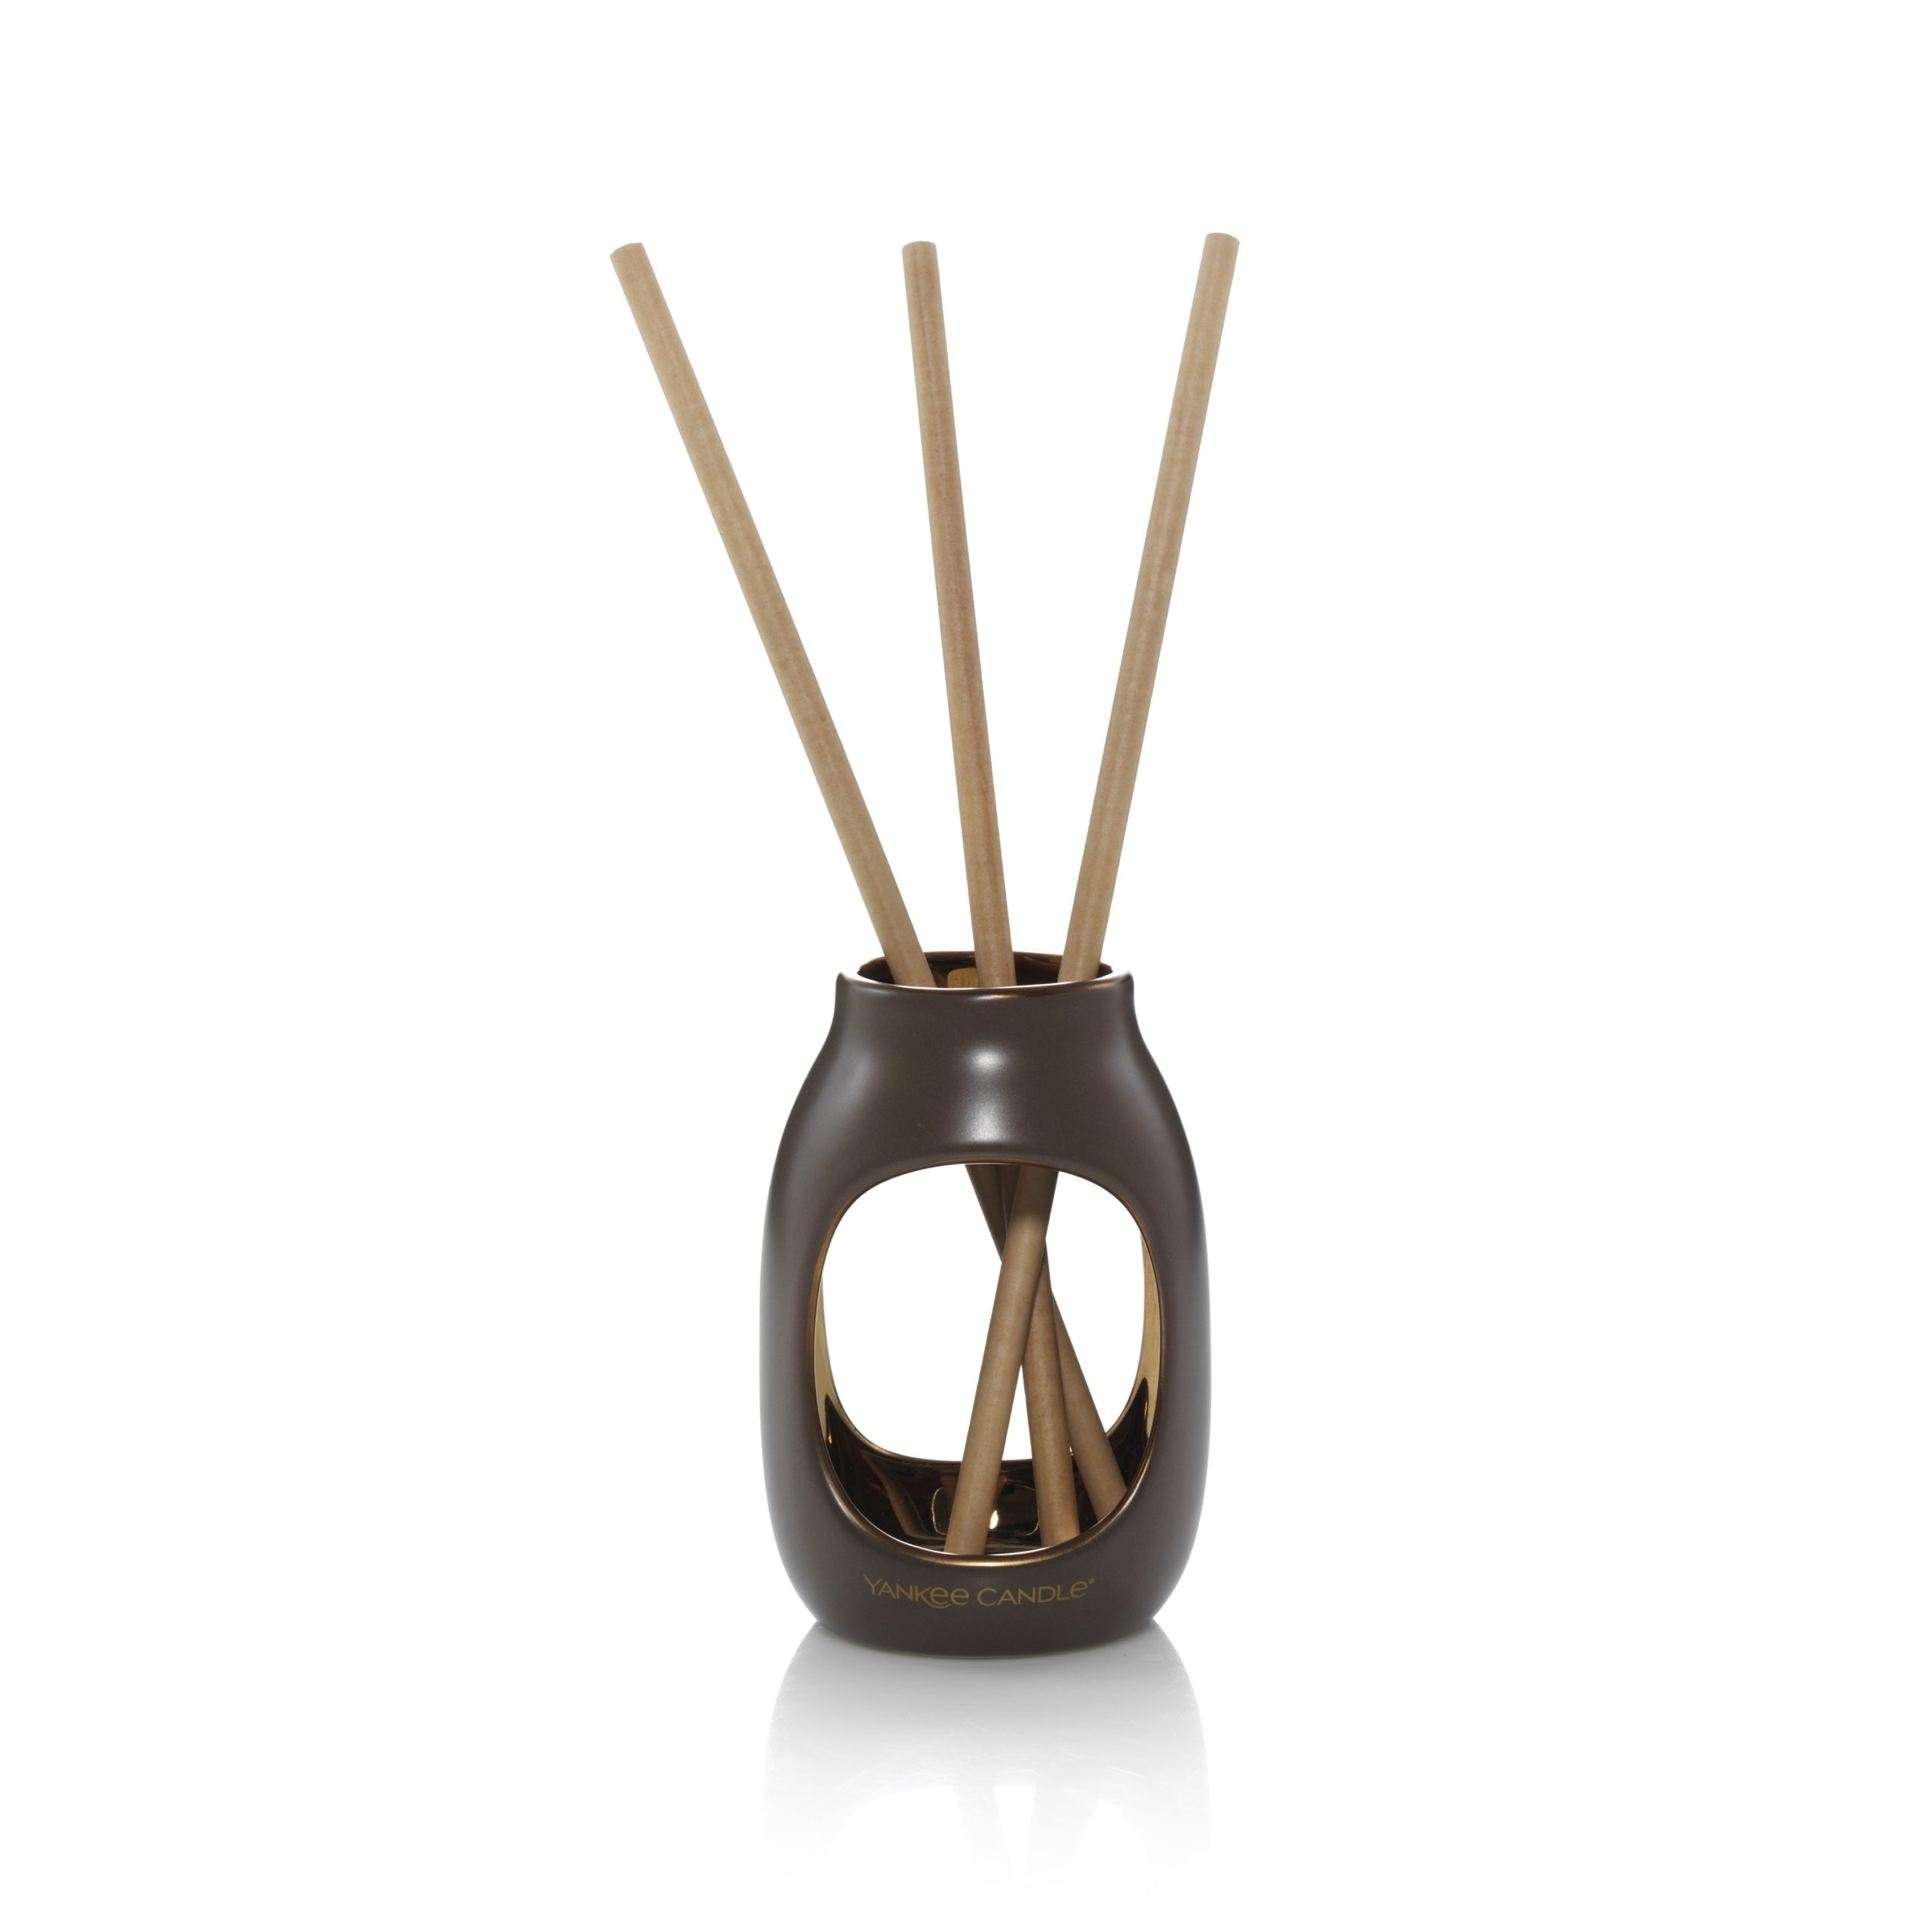 Cherry Blossom pre-fragranced reeds, £21.99, Yankee Candle